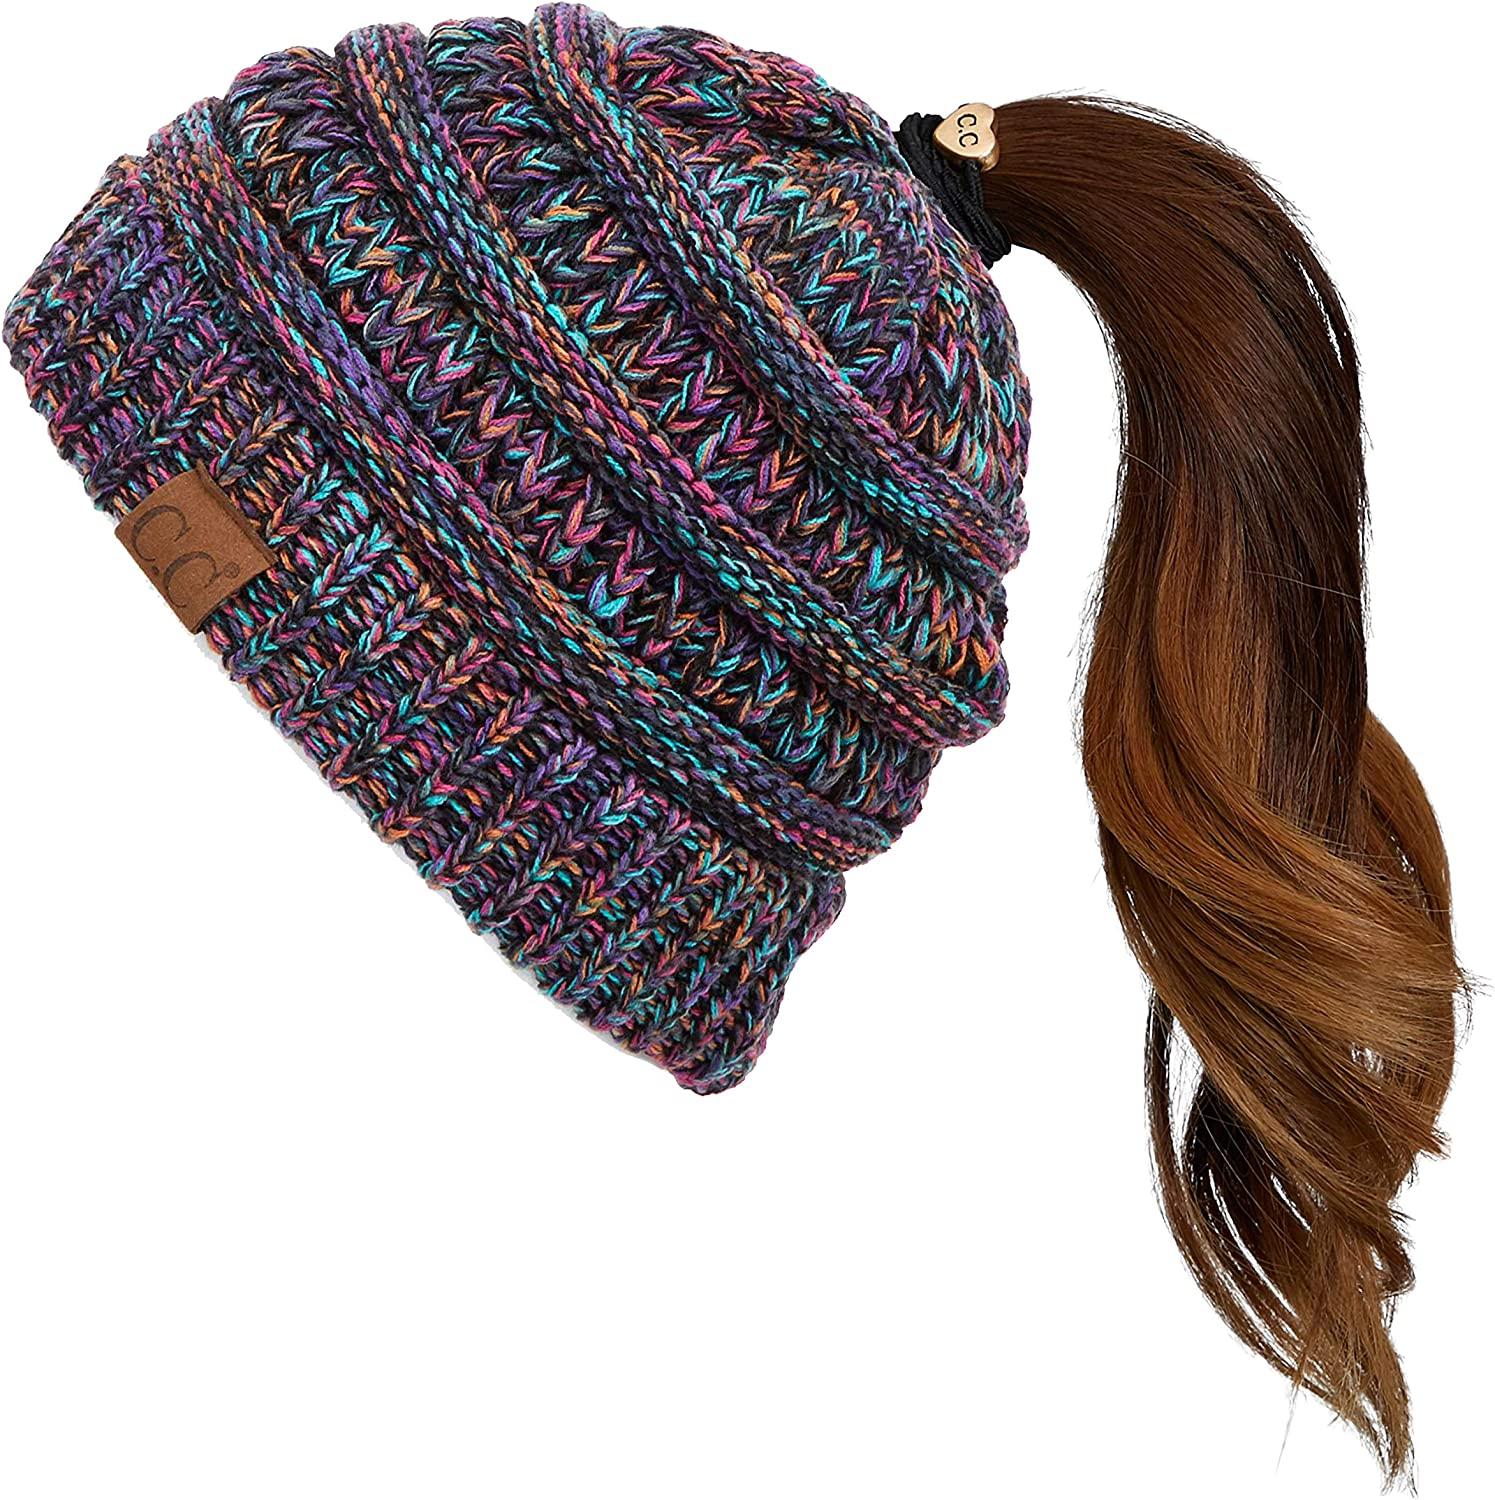 C.C Exclusives Soft Stretch Cable Knit Messy Bun Ponytail Beanie